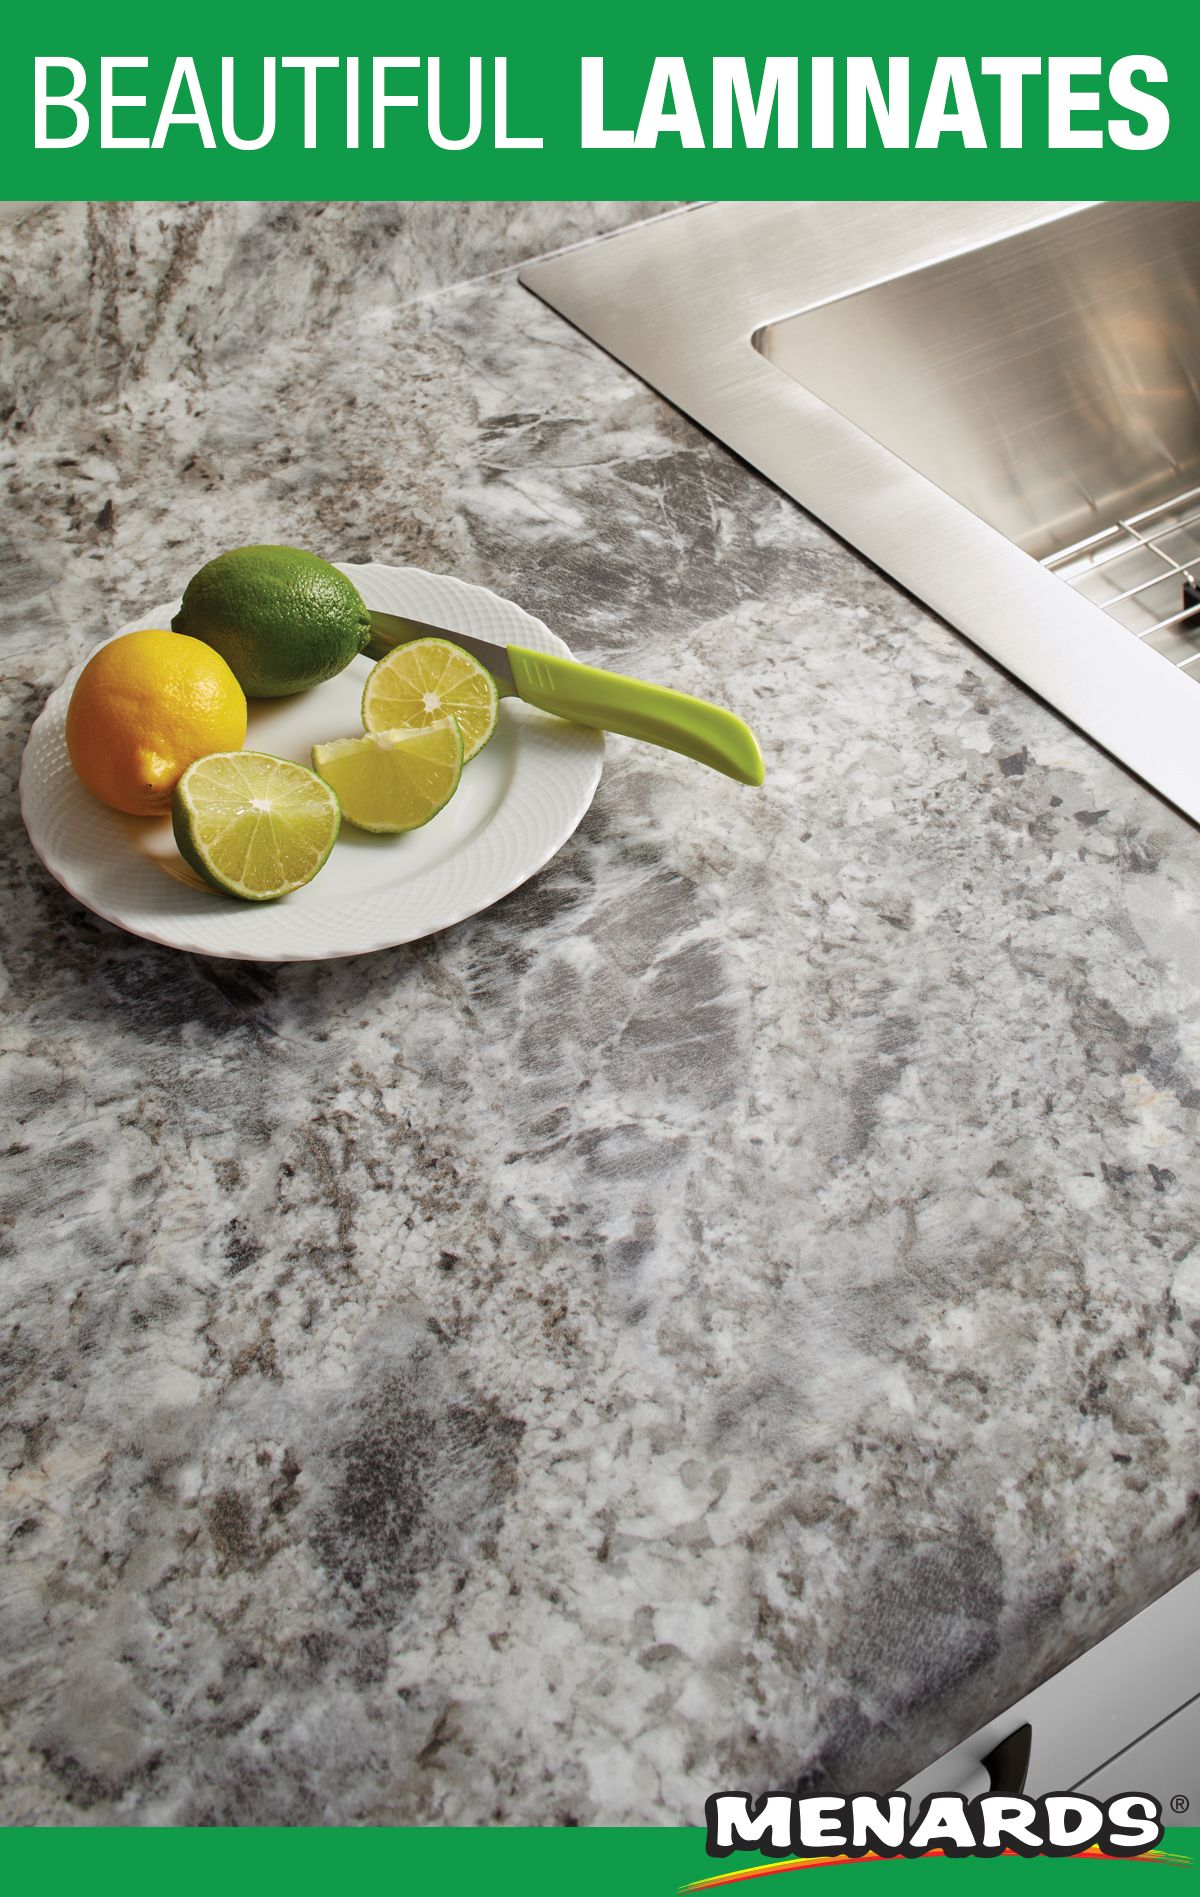 Transform Your Space With Laminates That Are As Beautiful As They Are Durable High Resolution Options Suc Countertops Granite Countertops Laminate Countertops